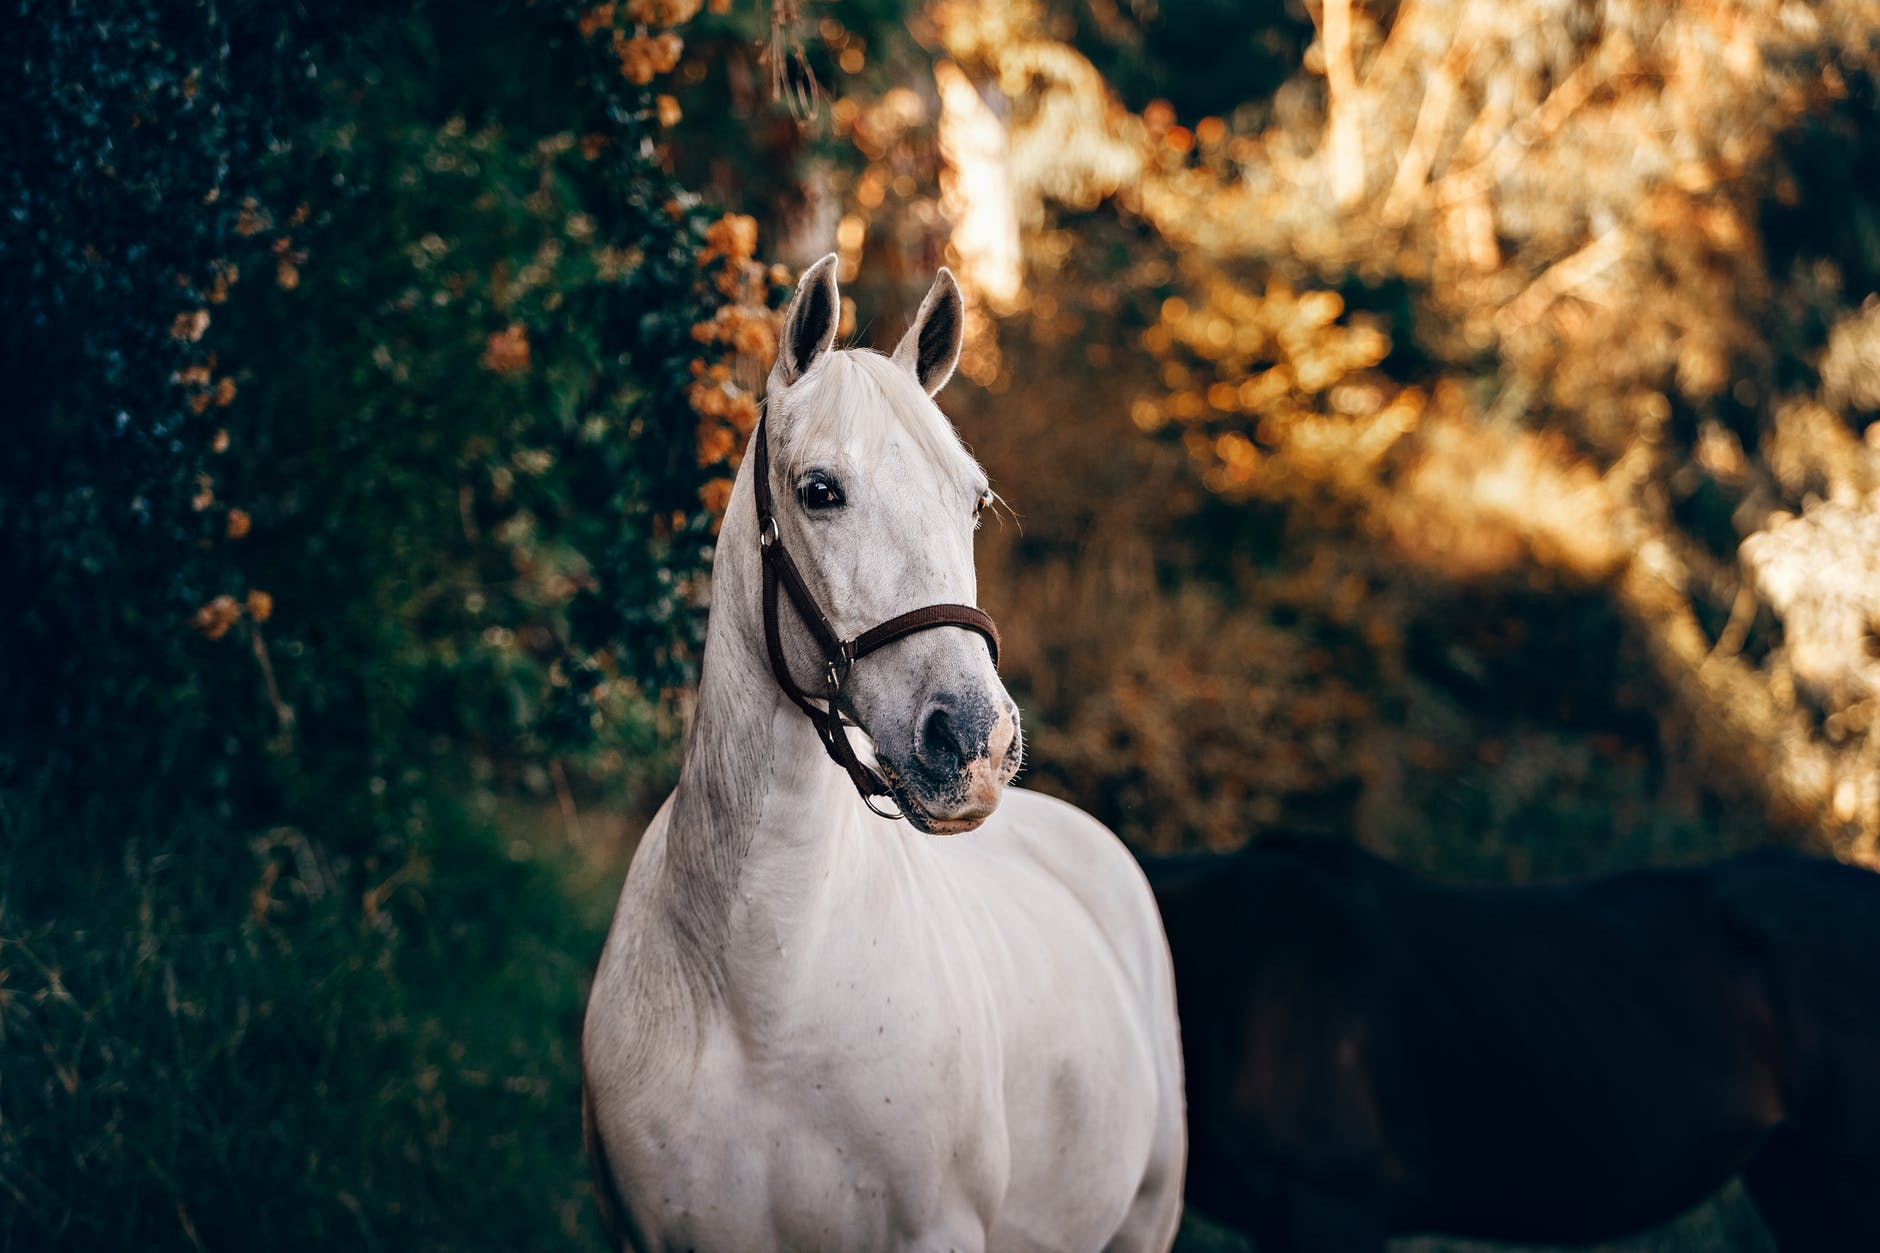 white horse near green leaves